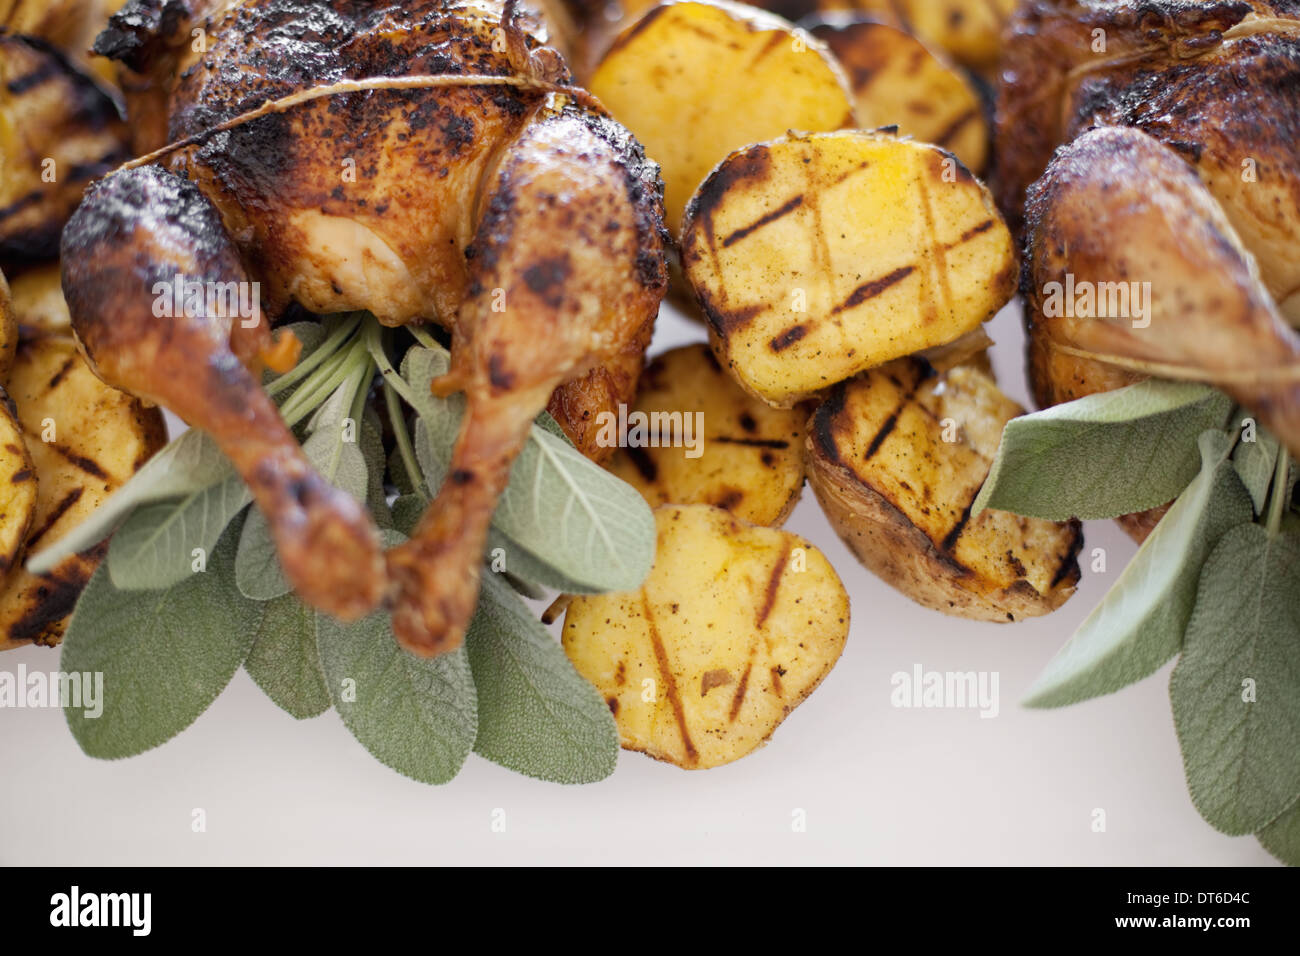 Organic free-range cooked chicken and roasted potatoes on a dish. Food for a party. - Stock Image